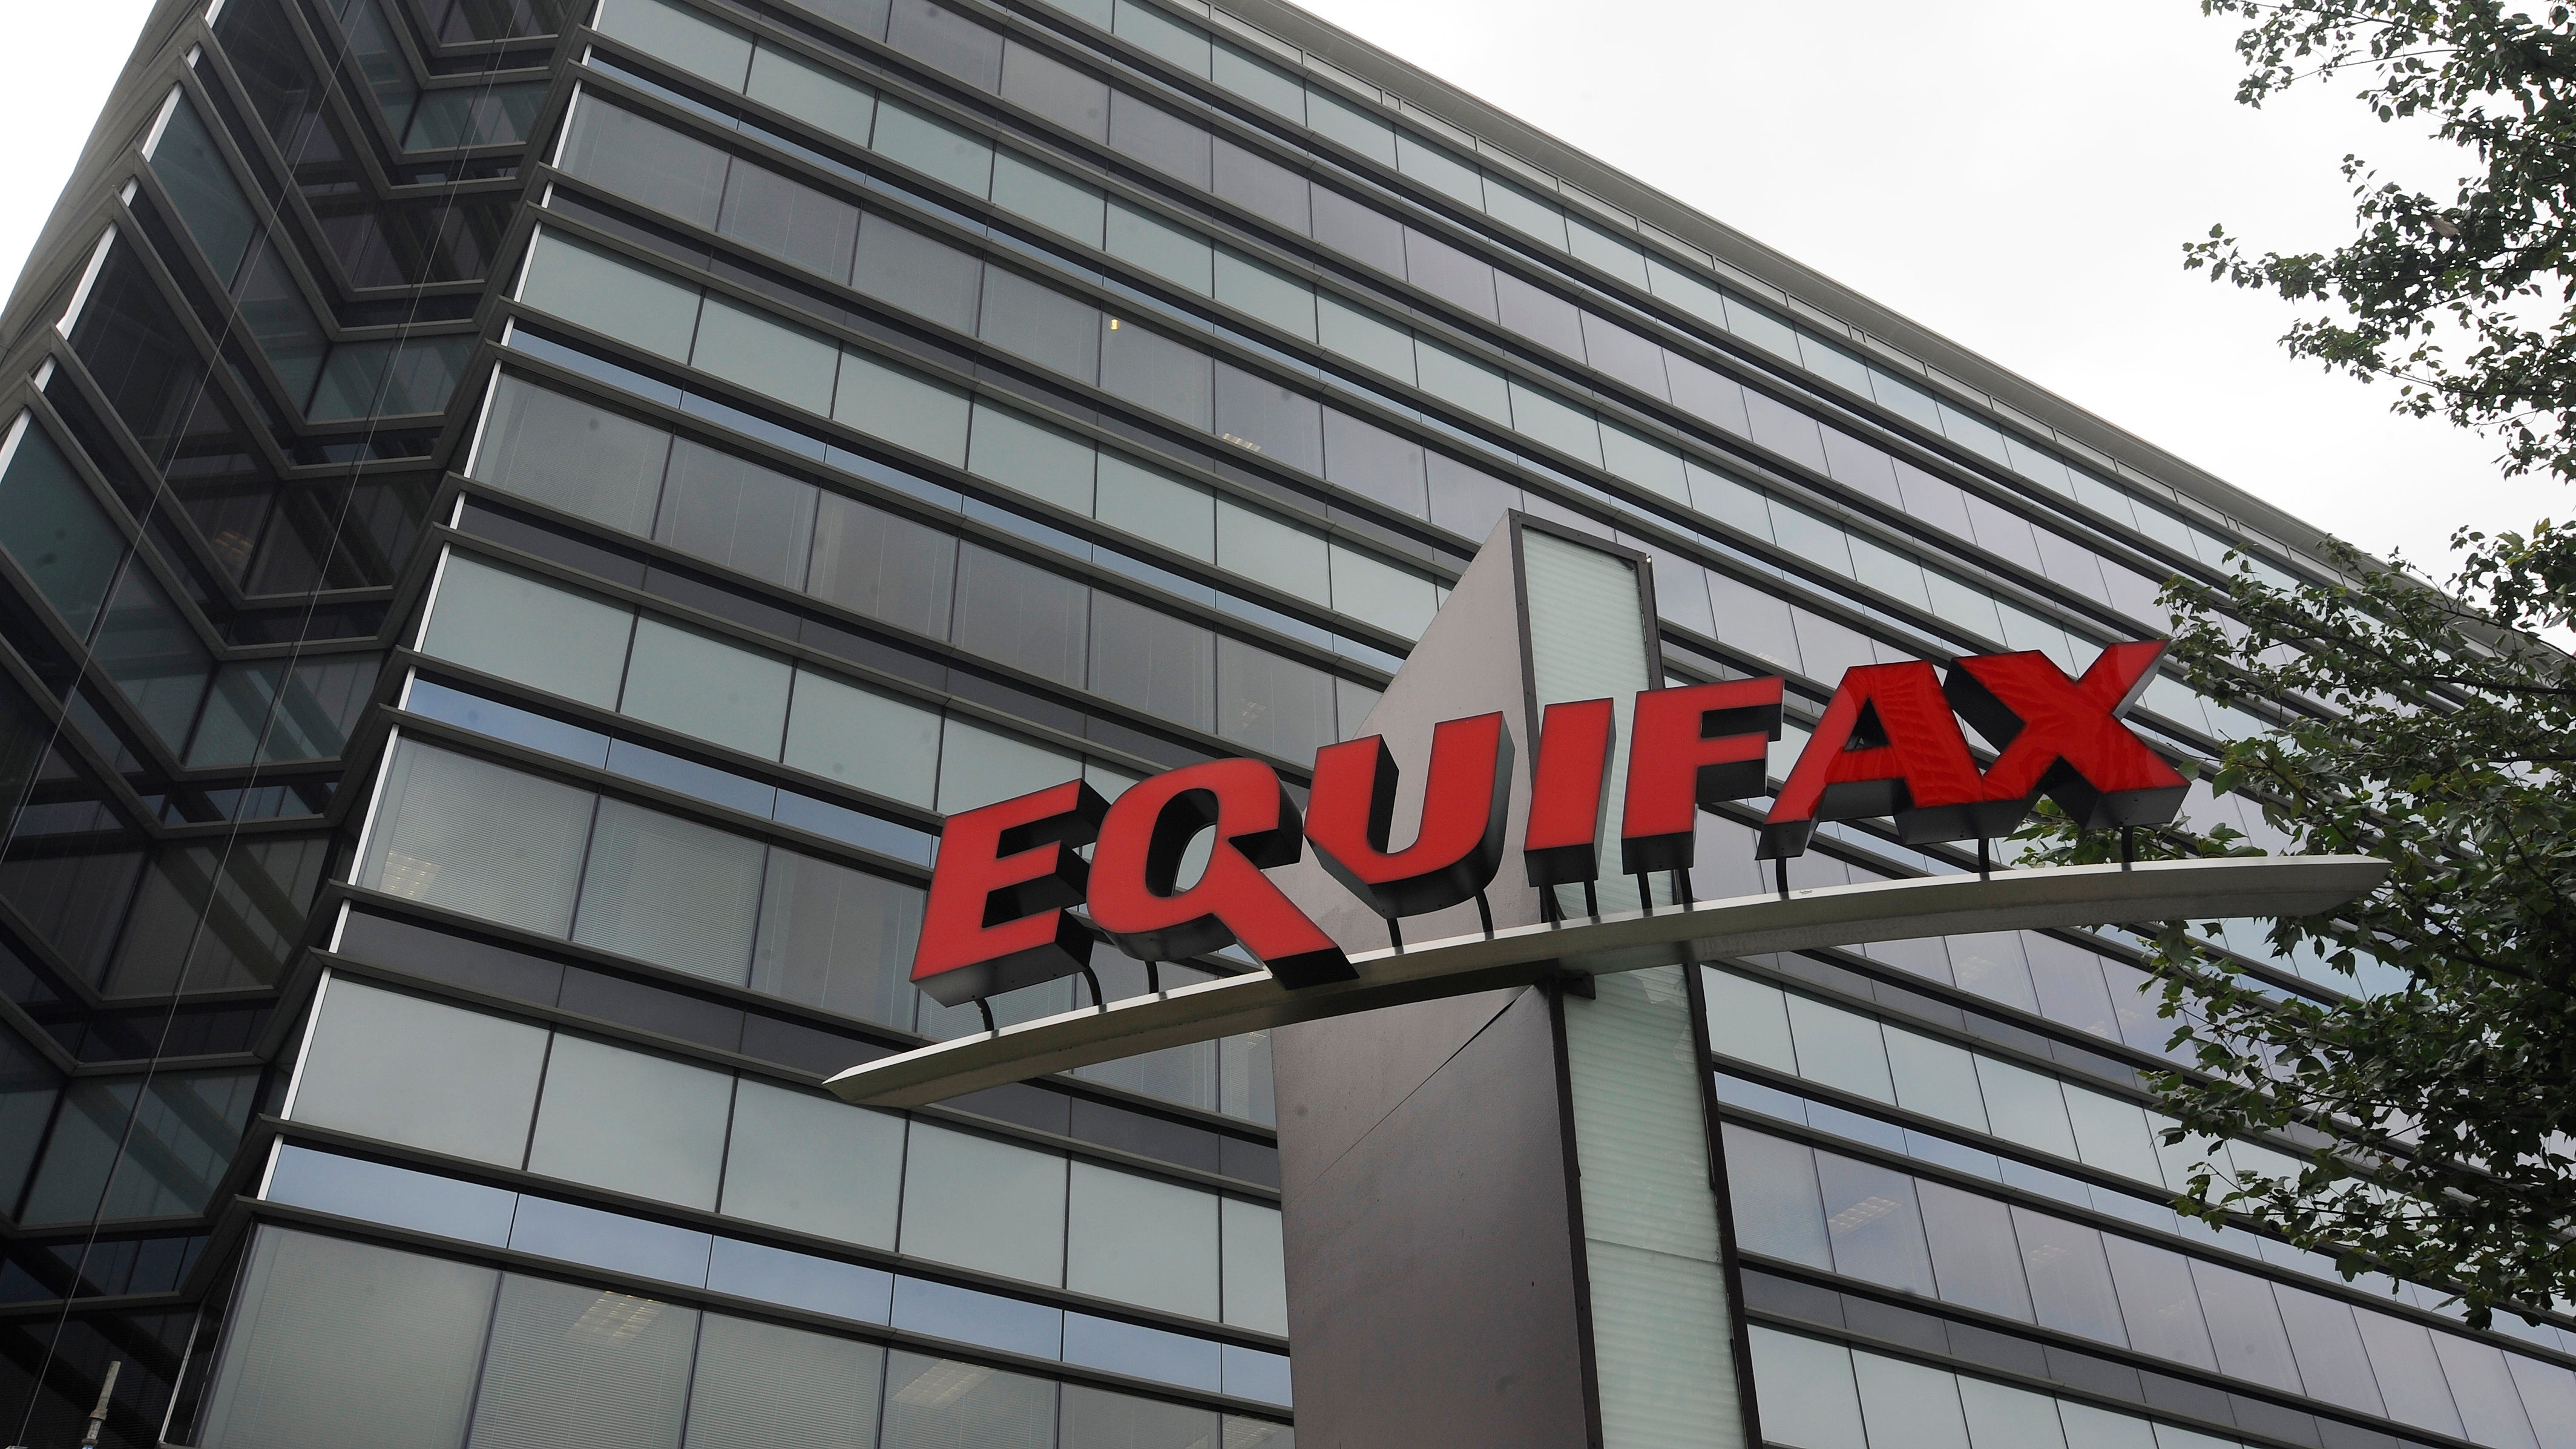 Oh Man, You're Gonna Hate What Equifax Just Admitted About That Security Breach